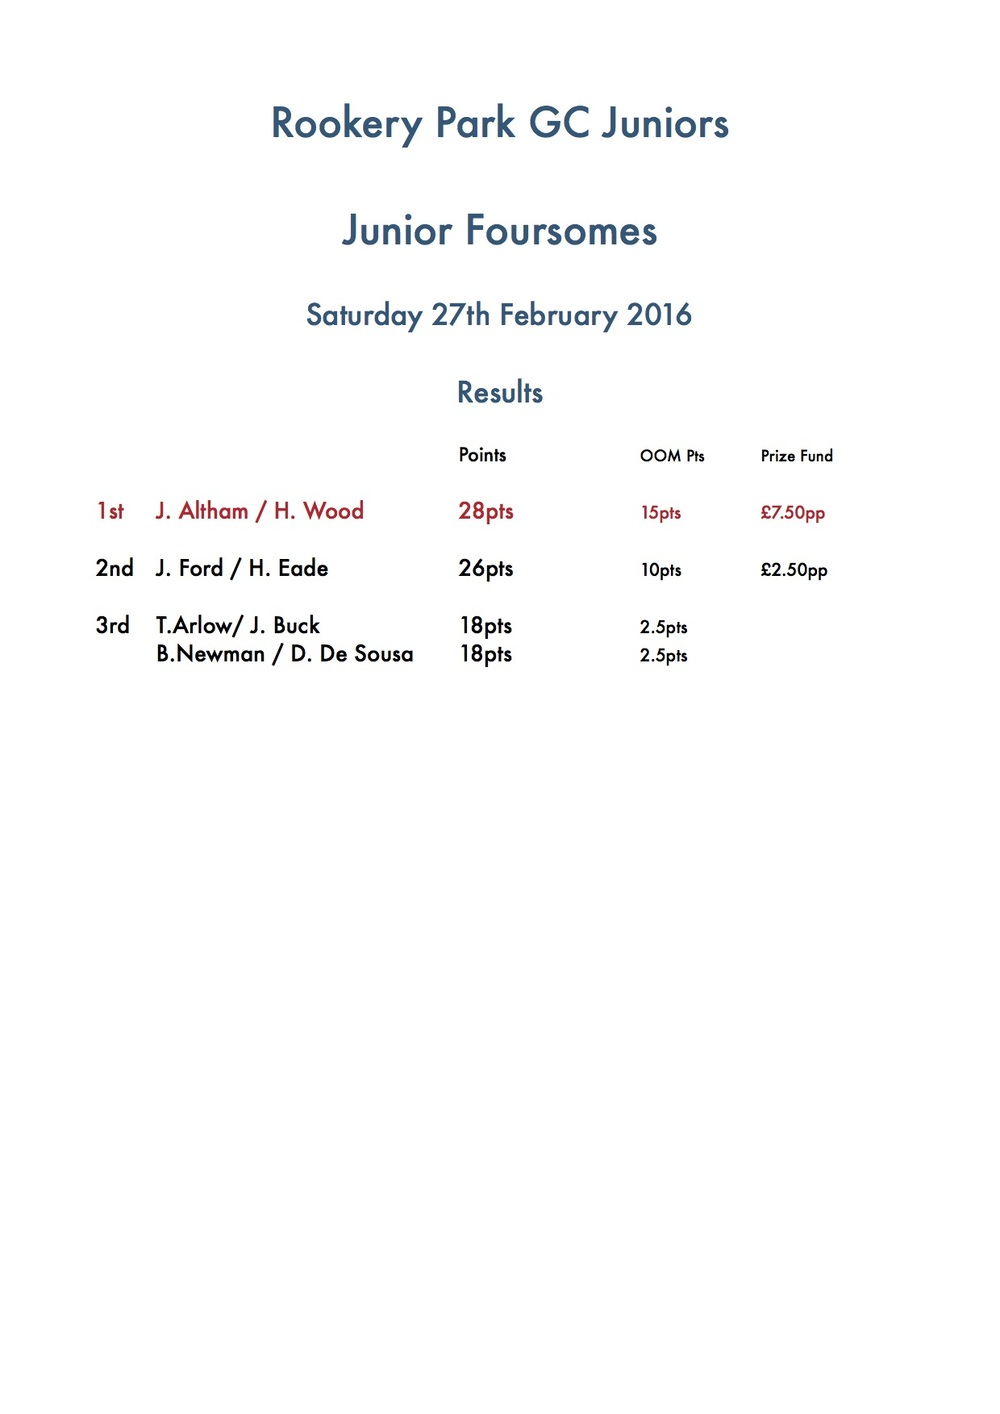 Junior Foursomes Res.jpg